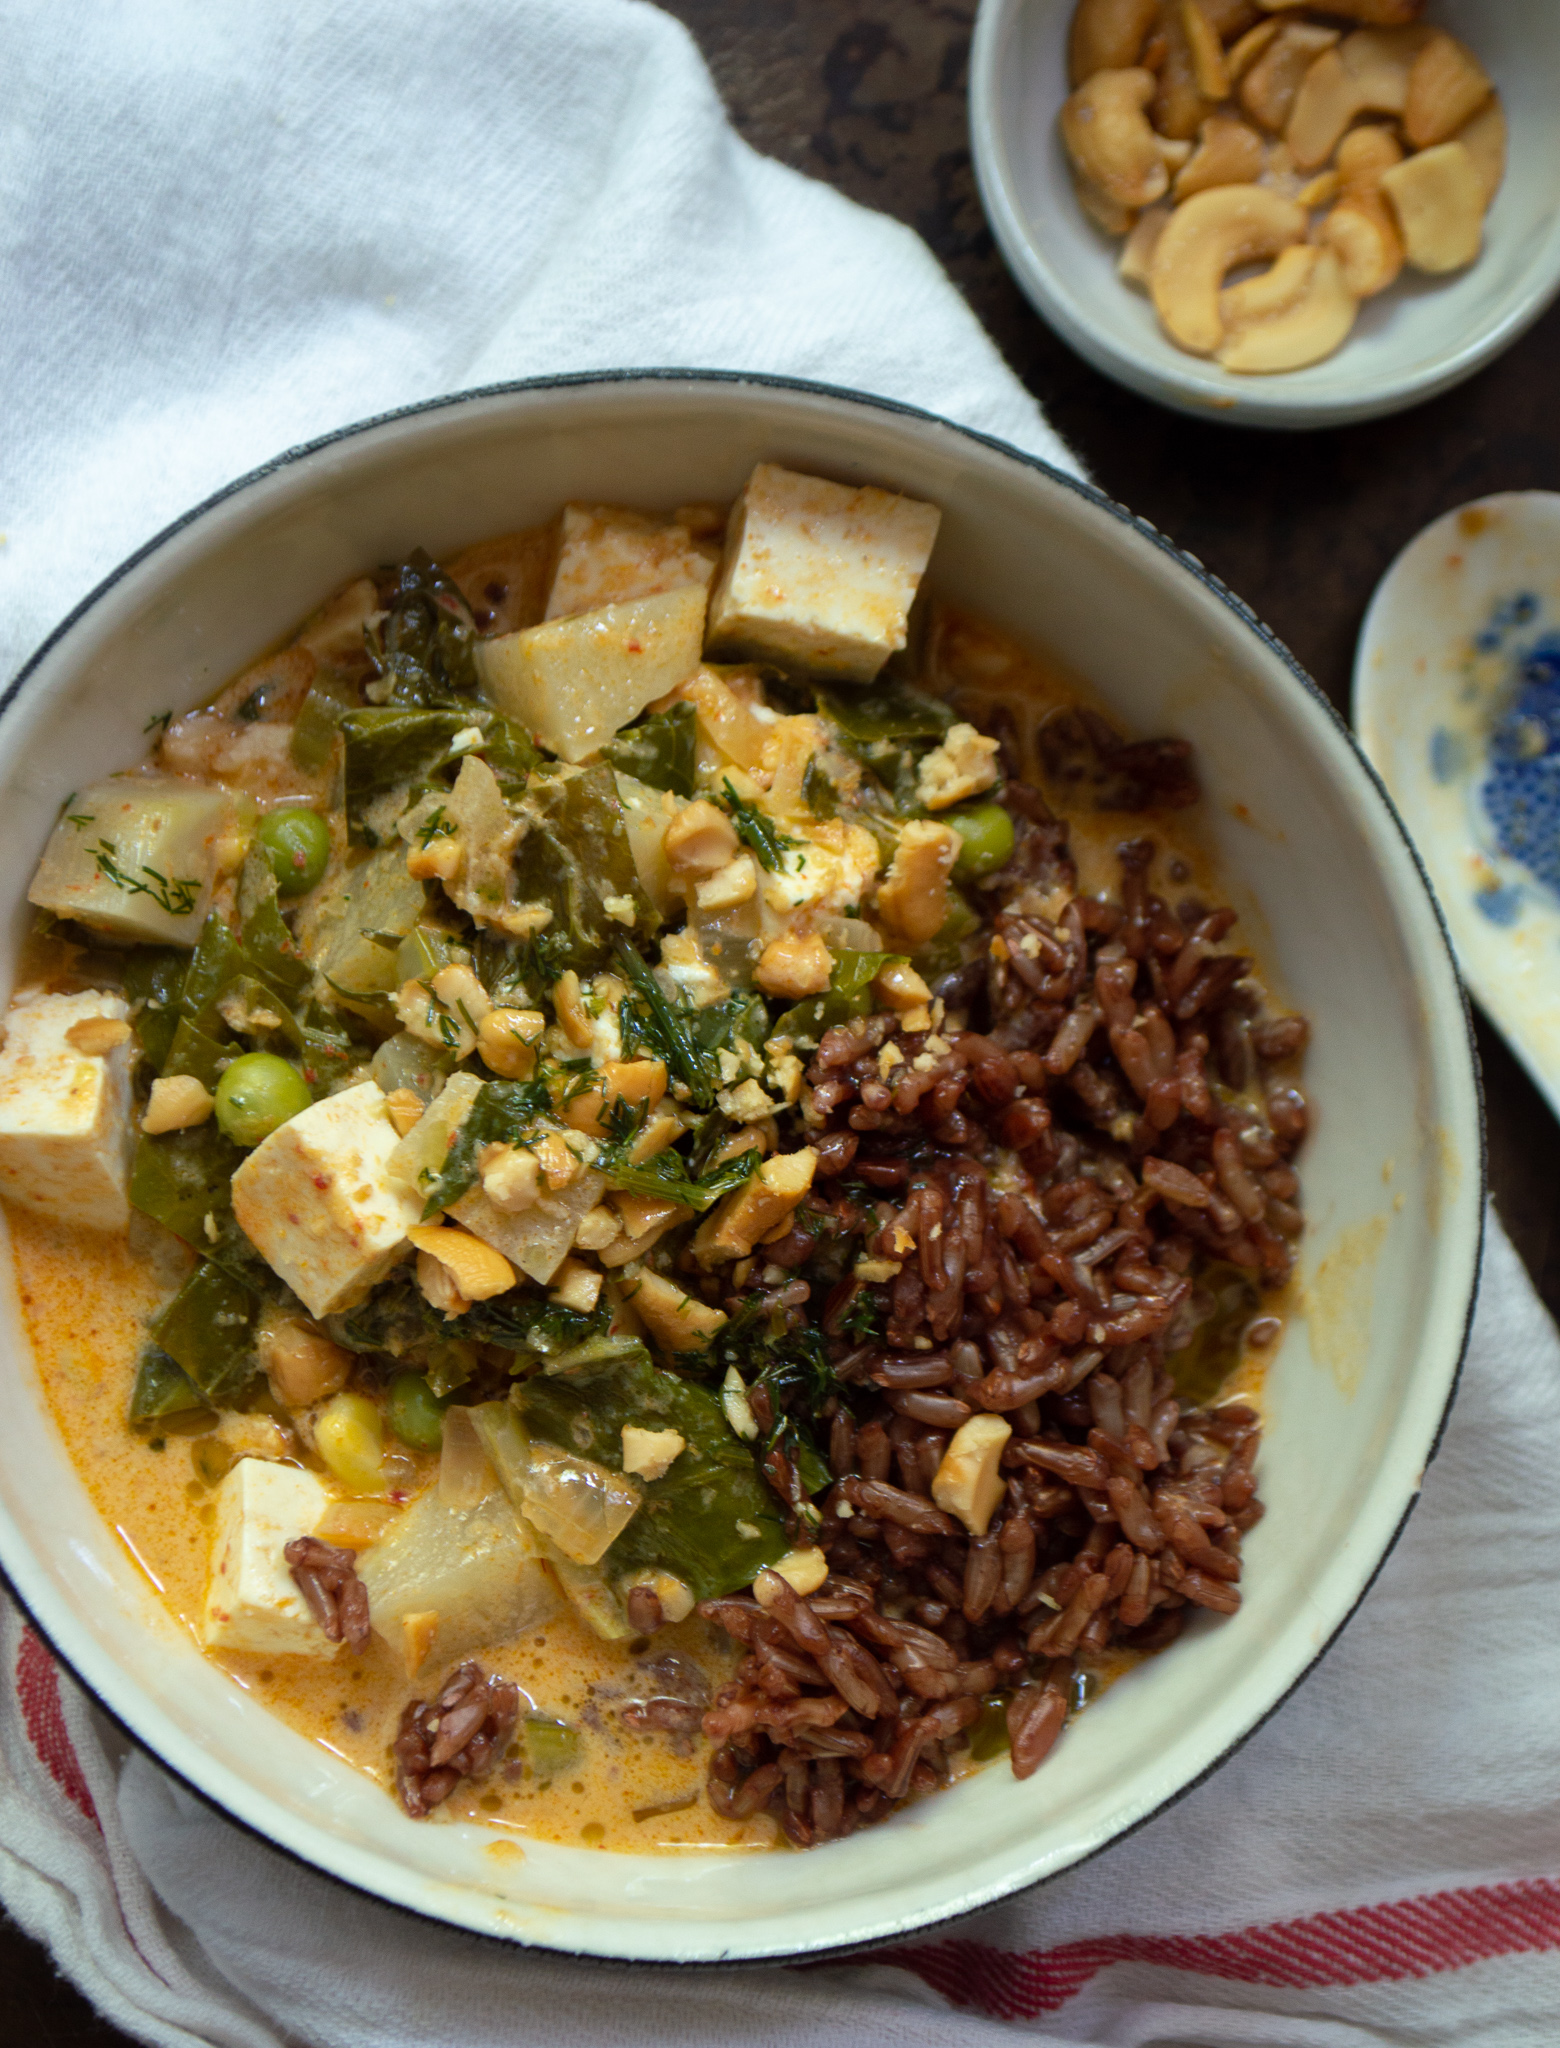 Red curry with red rice, tofu, kohlrabi root and leaves, and leftover frozen peas and corn, garnished with crushed cashews and dill herb oil